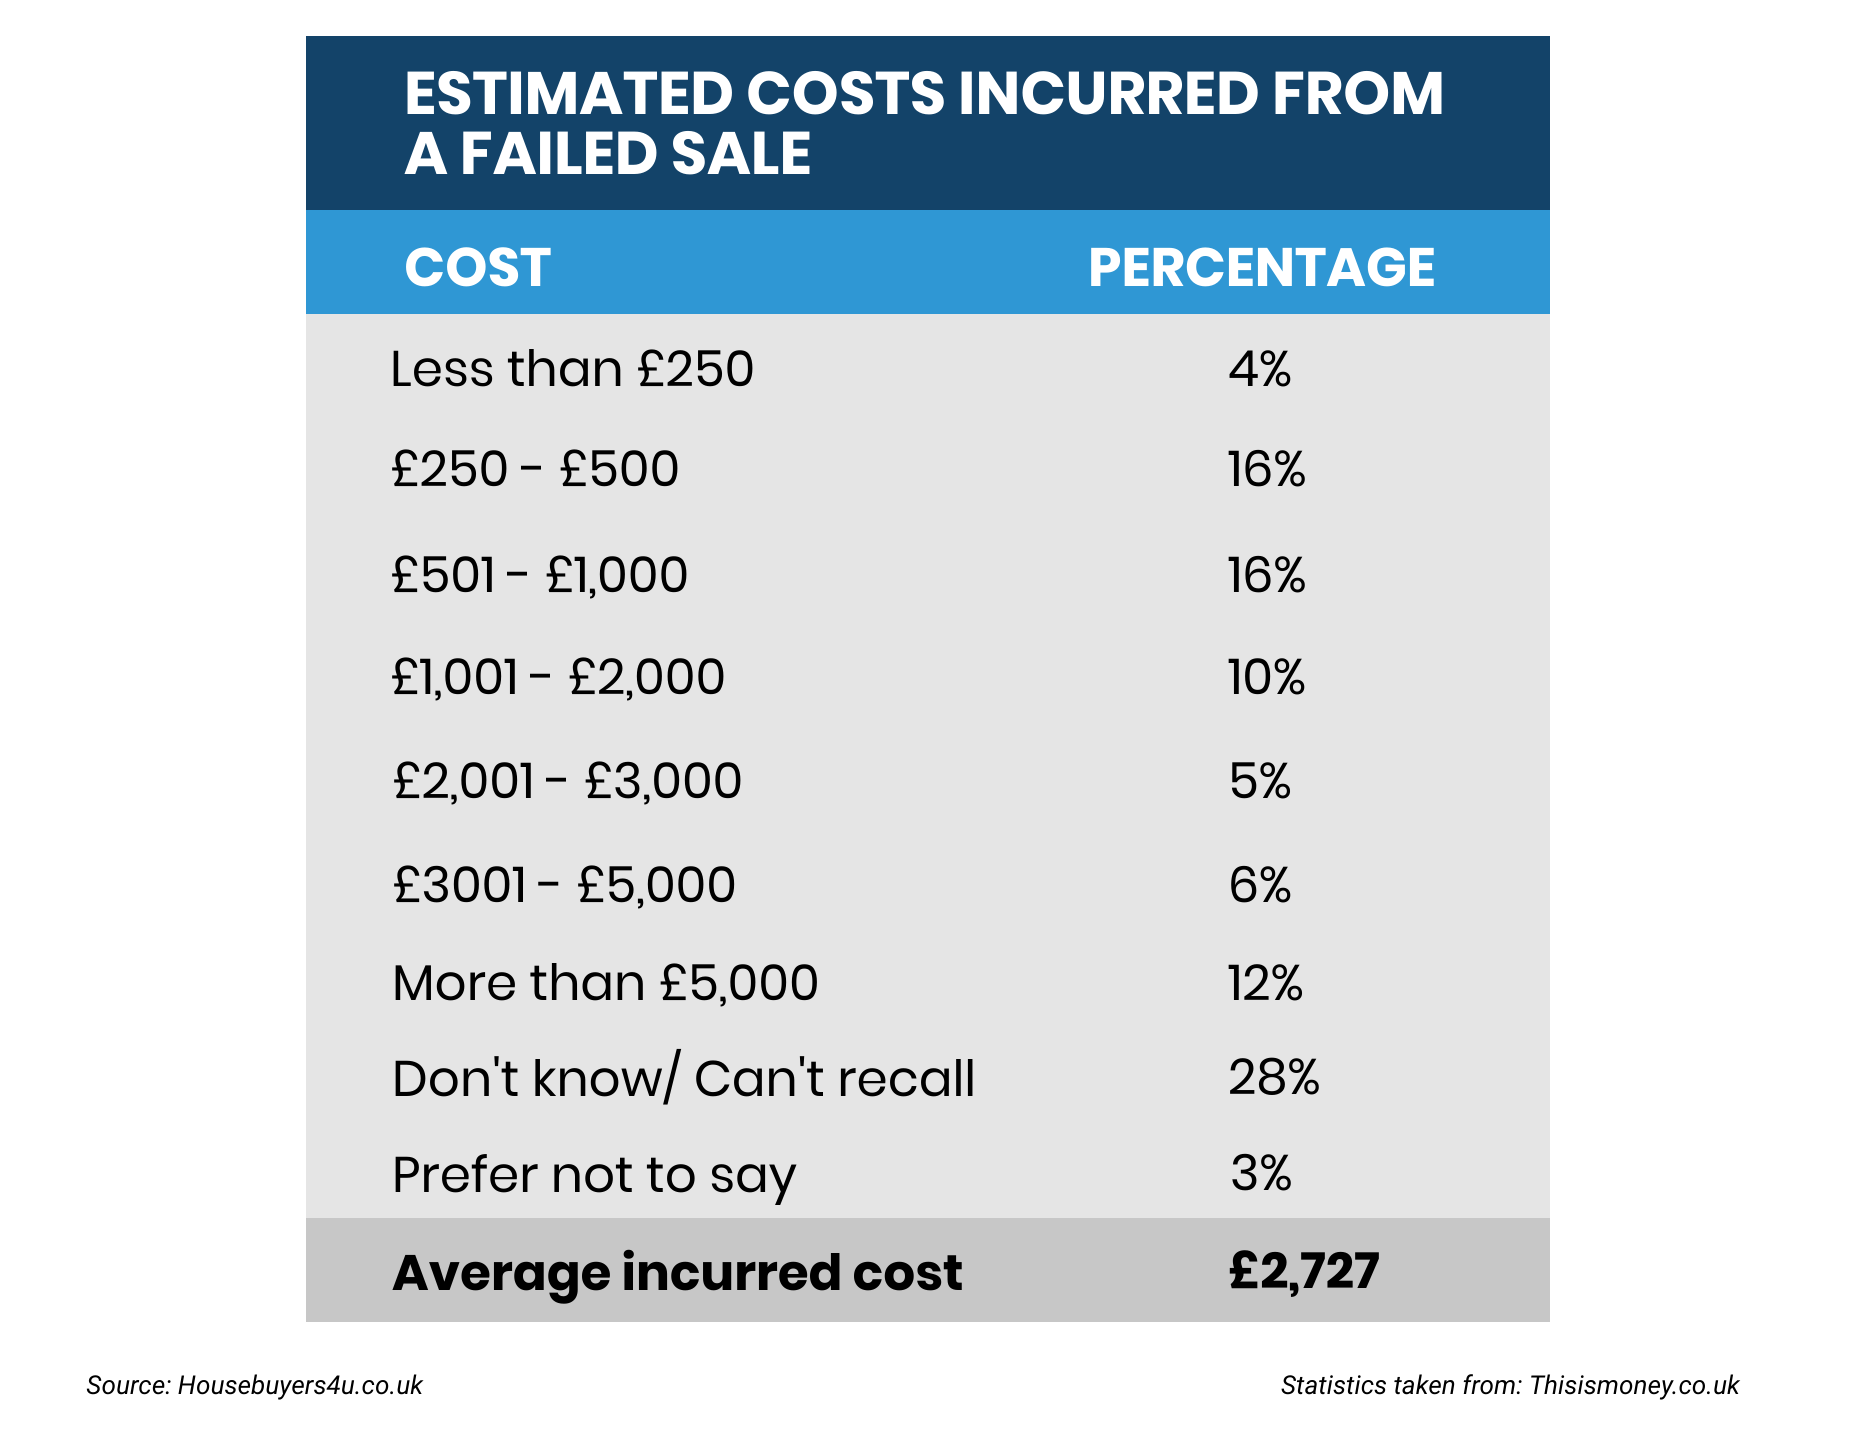 A table that shows the estimated costs incurred from a failed sale